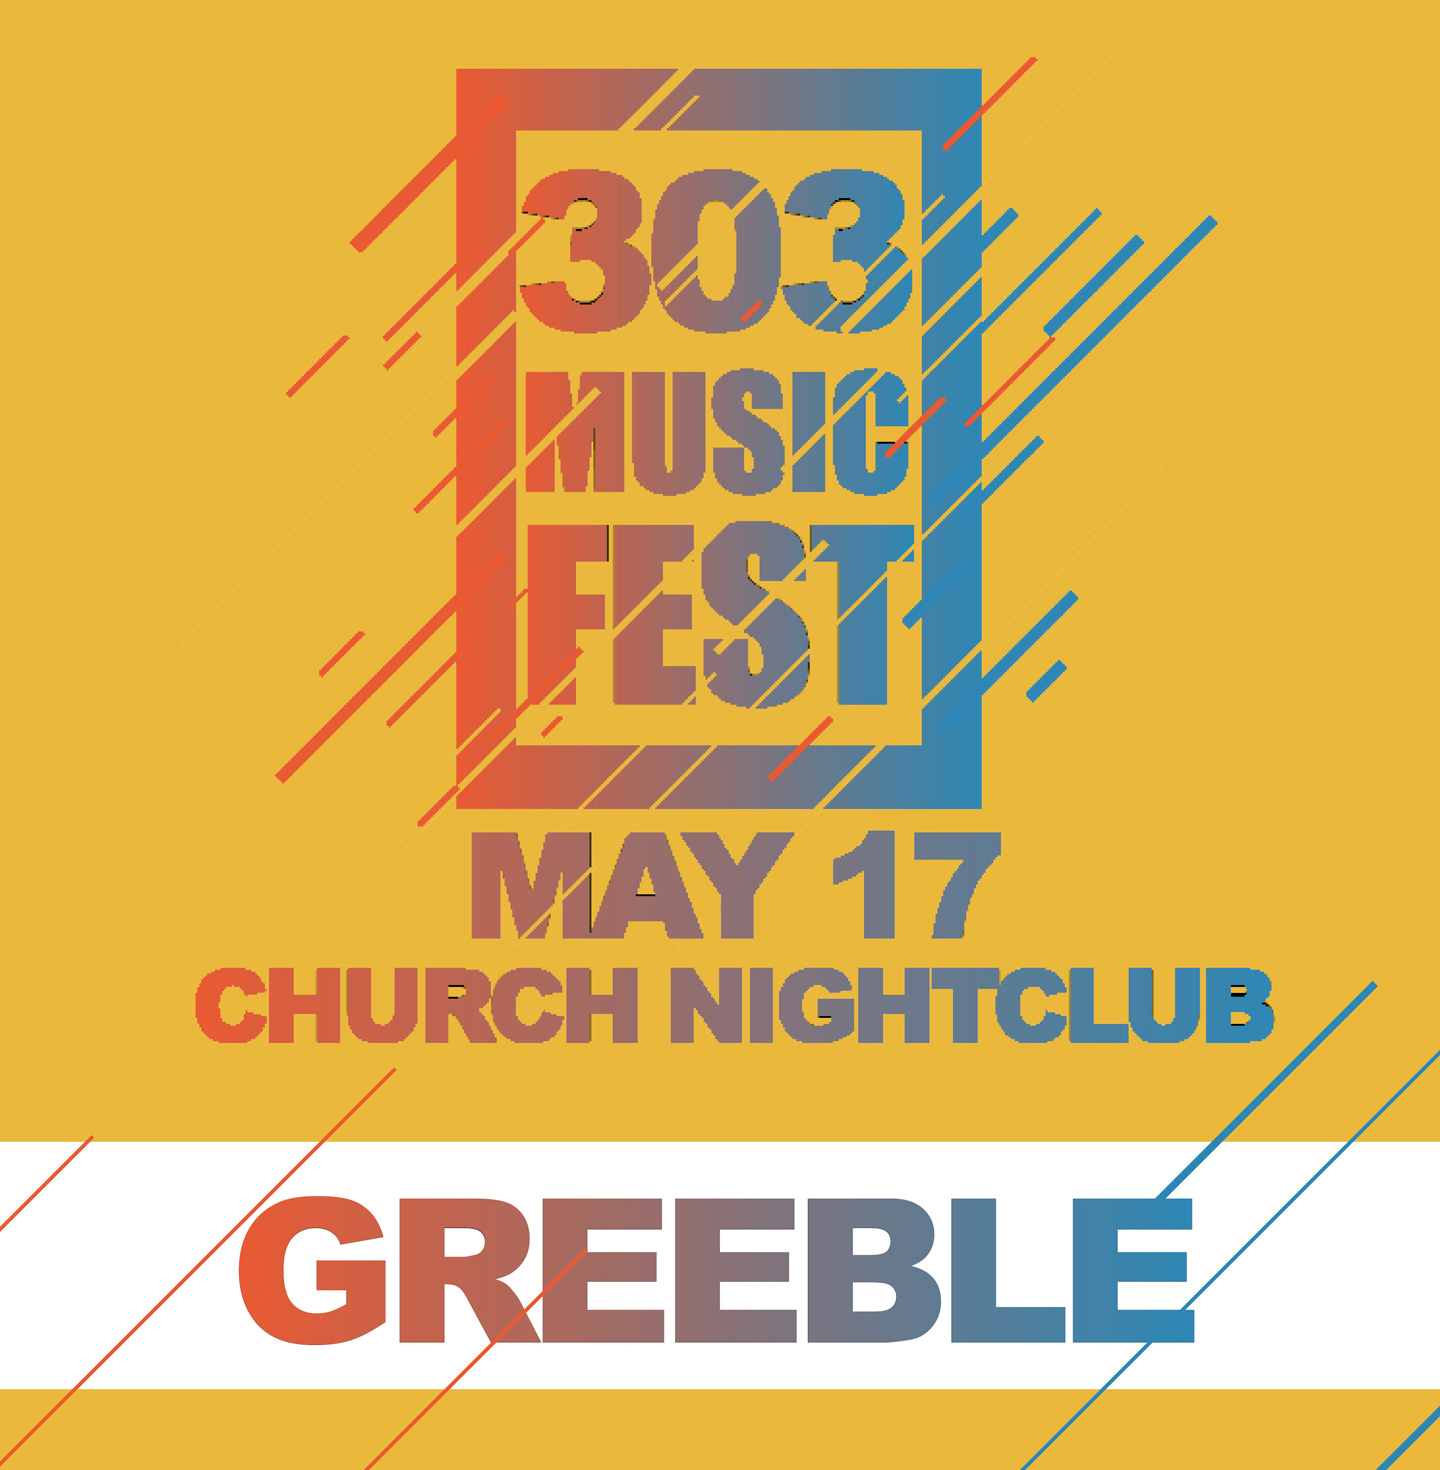 Use discount code GREEBLE to get $10 OFF tickets for 303 Music Fest by 303 Magazine #303MusicFest